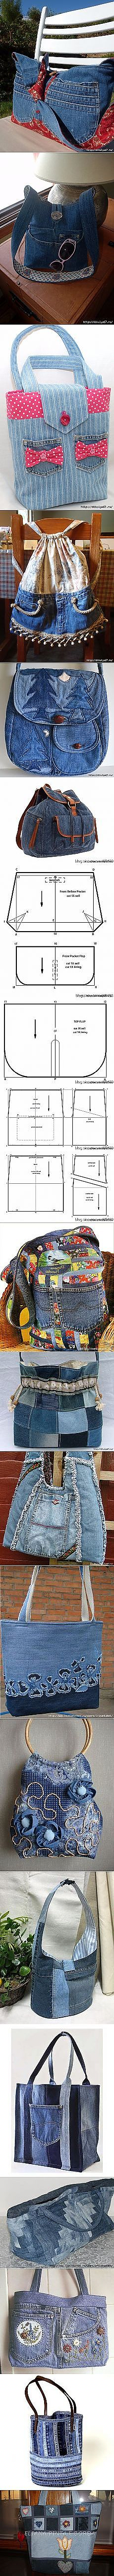 Search on Postila: jeans bags